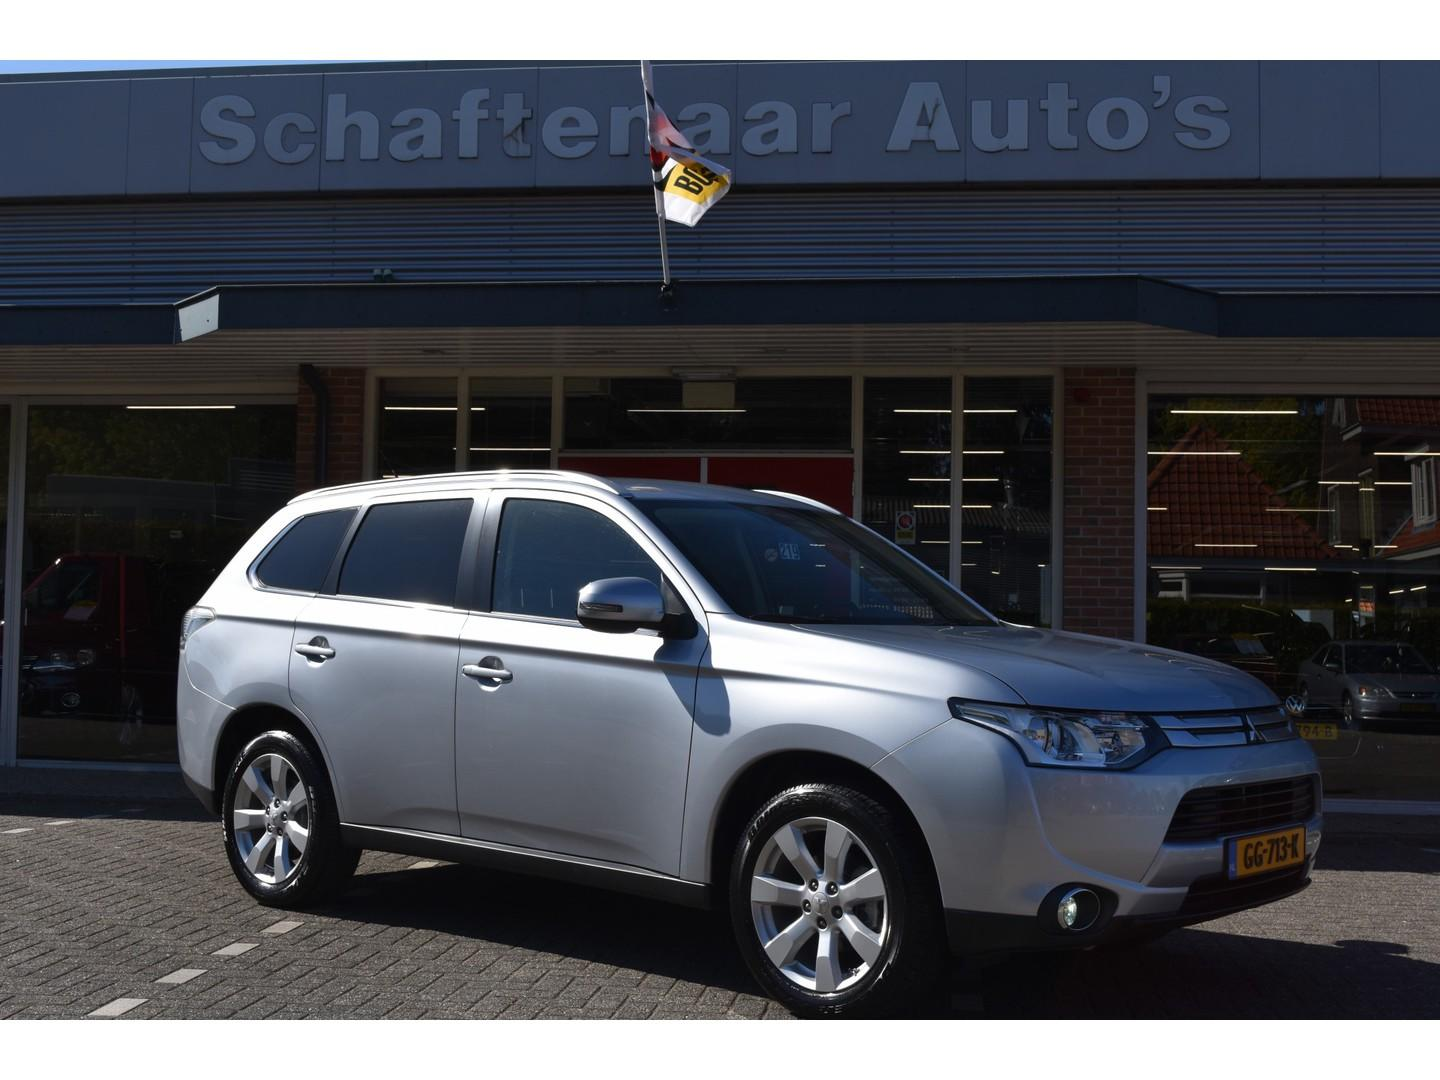 Mitsubishi Outlander 2.0 business edition automaat/navigatie/7persoons